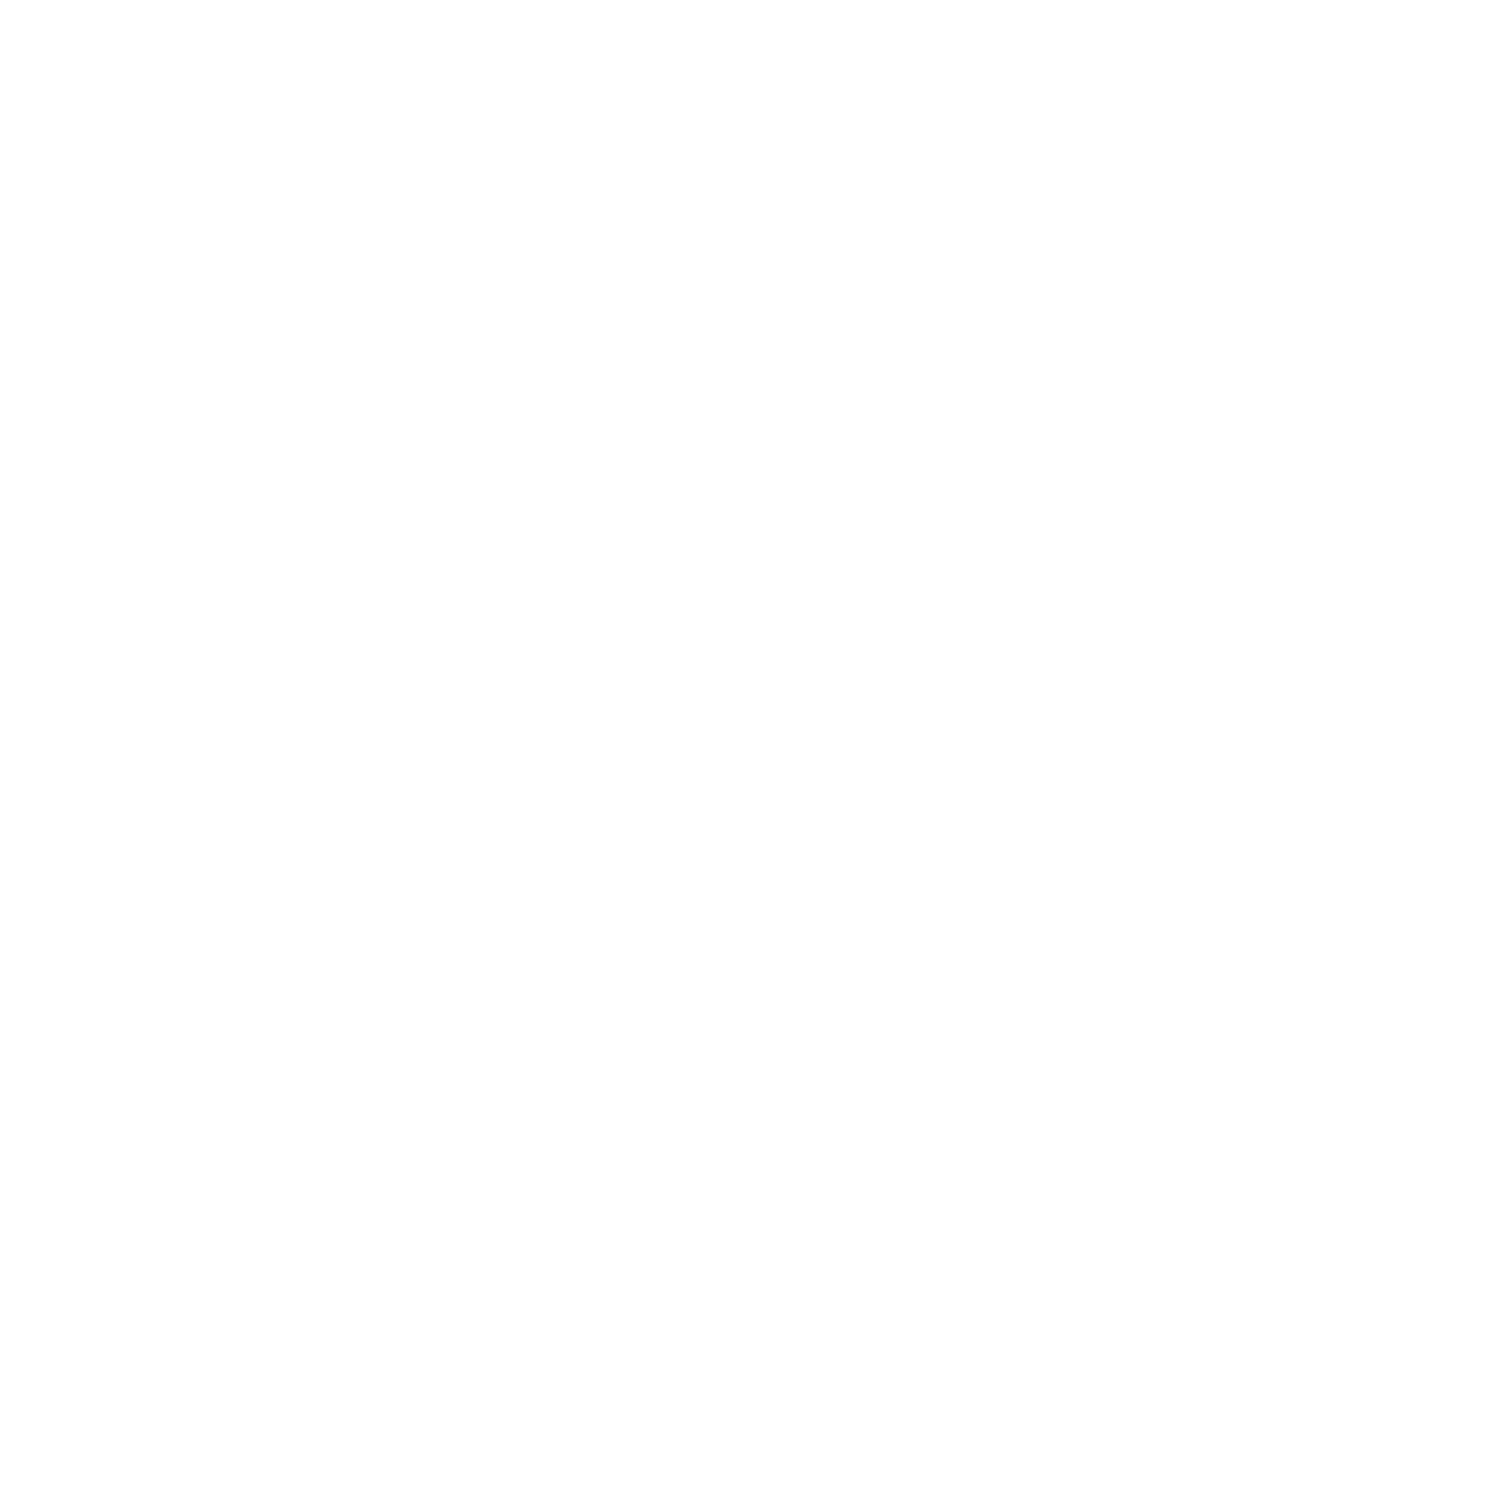 Taylor Duncan Photography